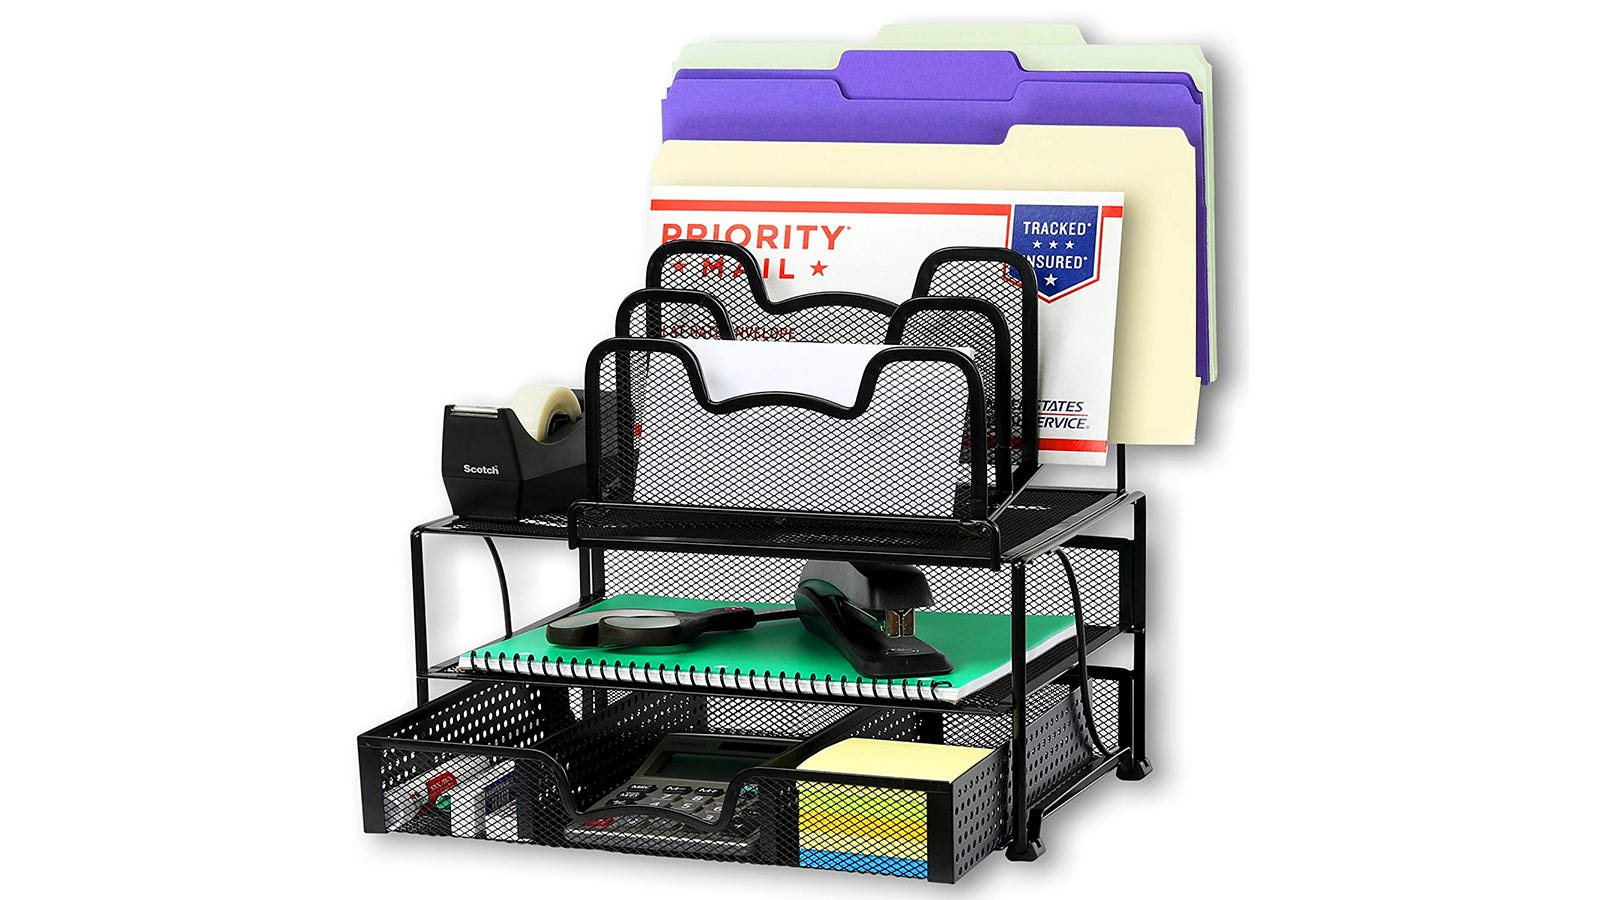 The SimpleHouseware Mesh Desk Organizer filled with file folders, envelopes, a tape dispenser, a stapler, Post-its, and a calculator.